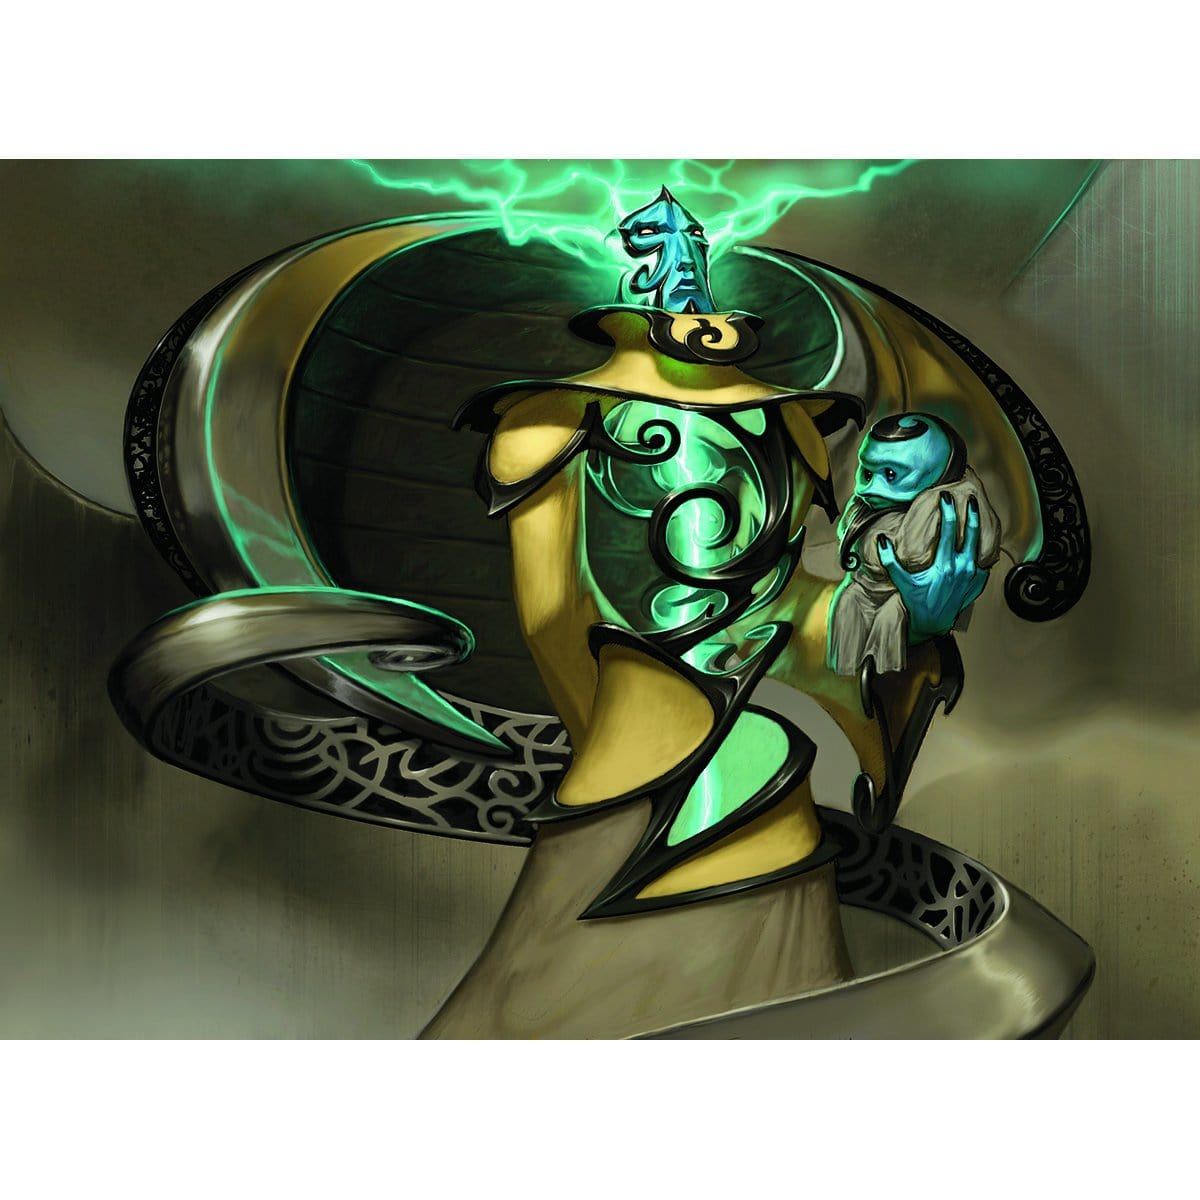 Master of Etherium Print - Print - Original Magic Art - Accessories for Magic the Gathering and other card games